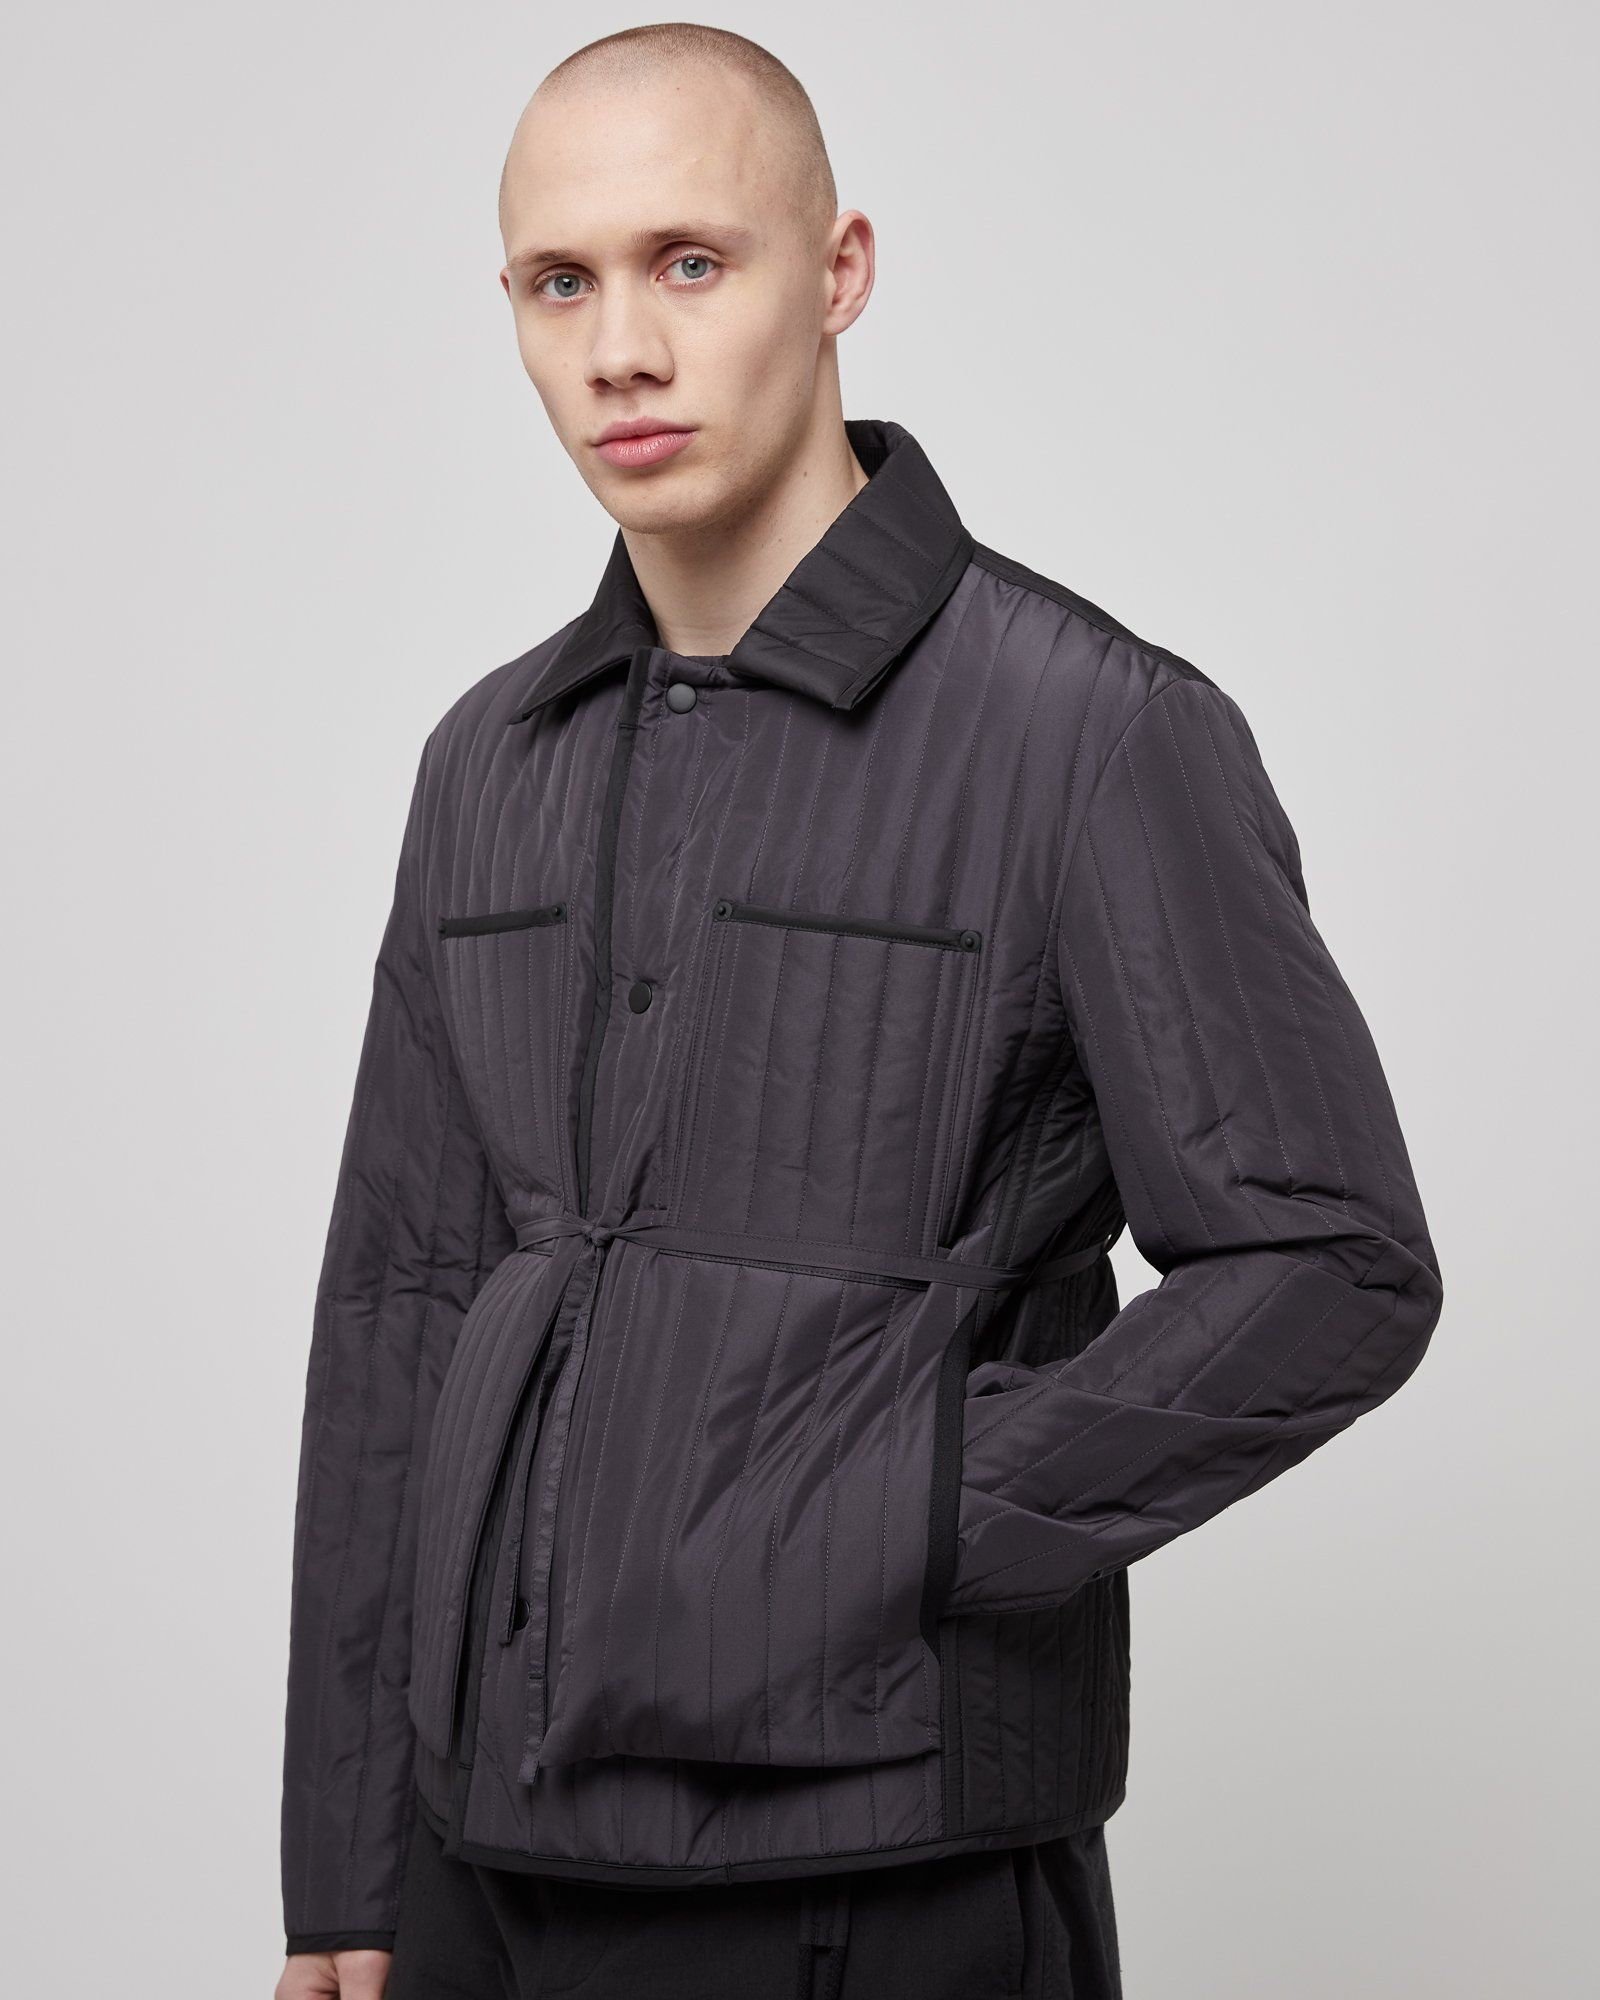 Quilted Worker Jacket In Gray Roden Gray In 2020 Jackets British Fashion Awards Quilted